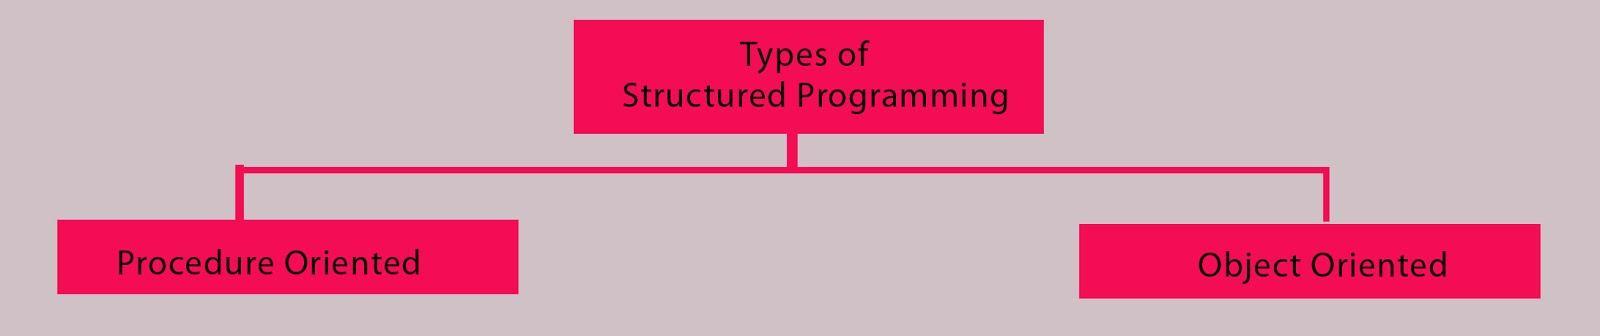 Object-oriented javascript is designed to teach web developers how to use object-oriented programming techniques to